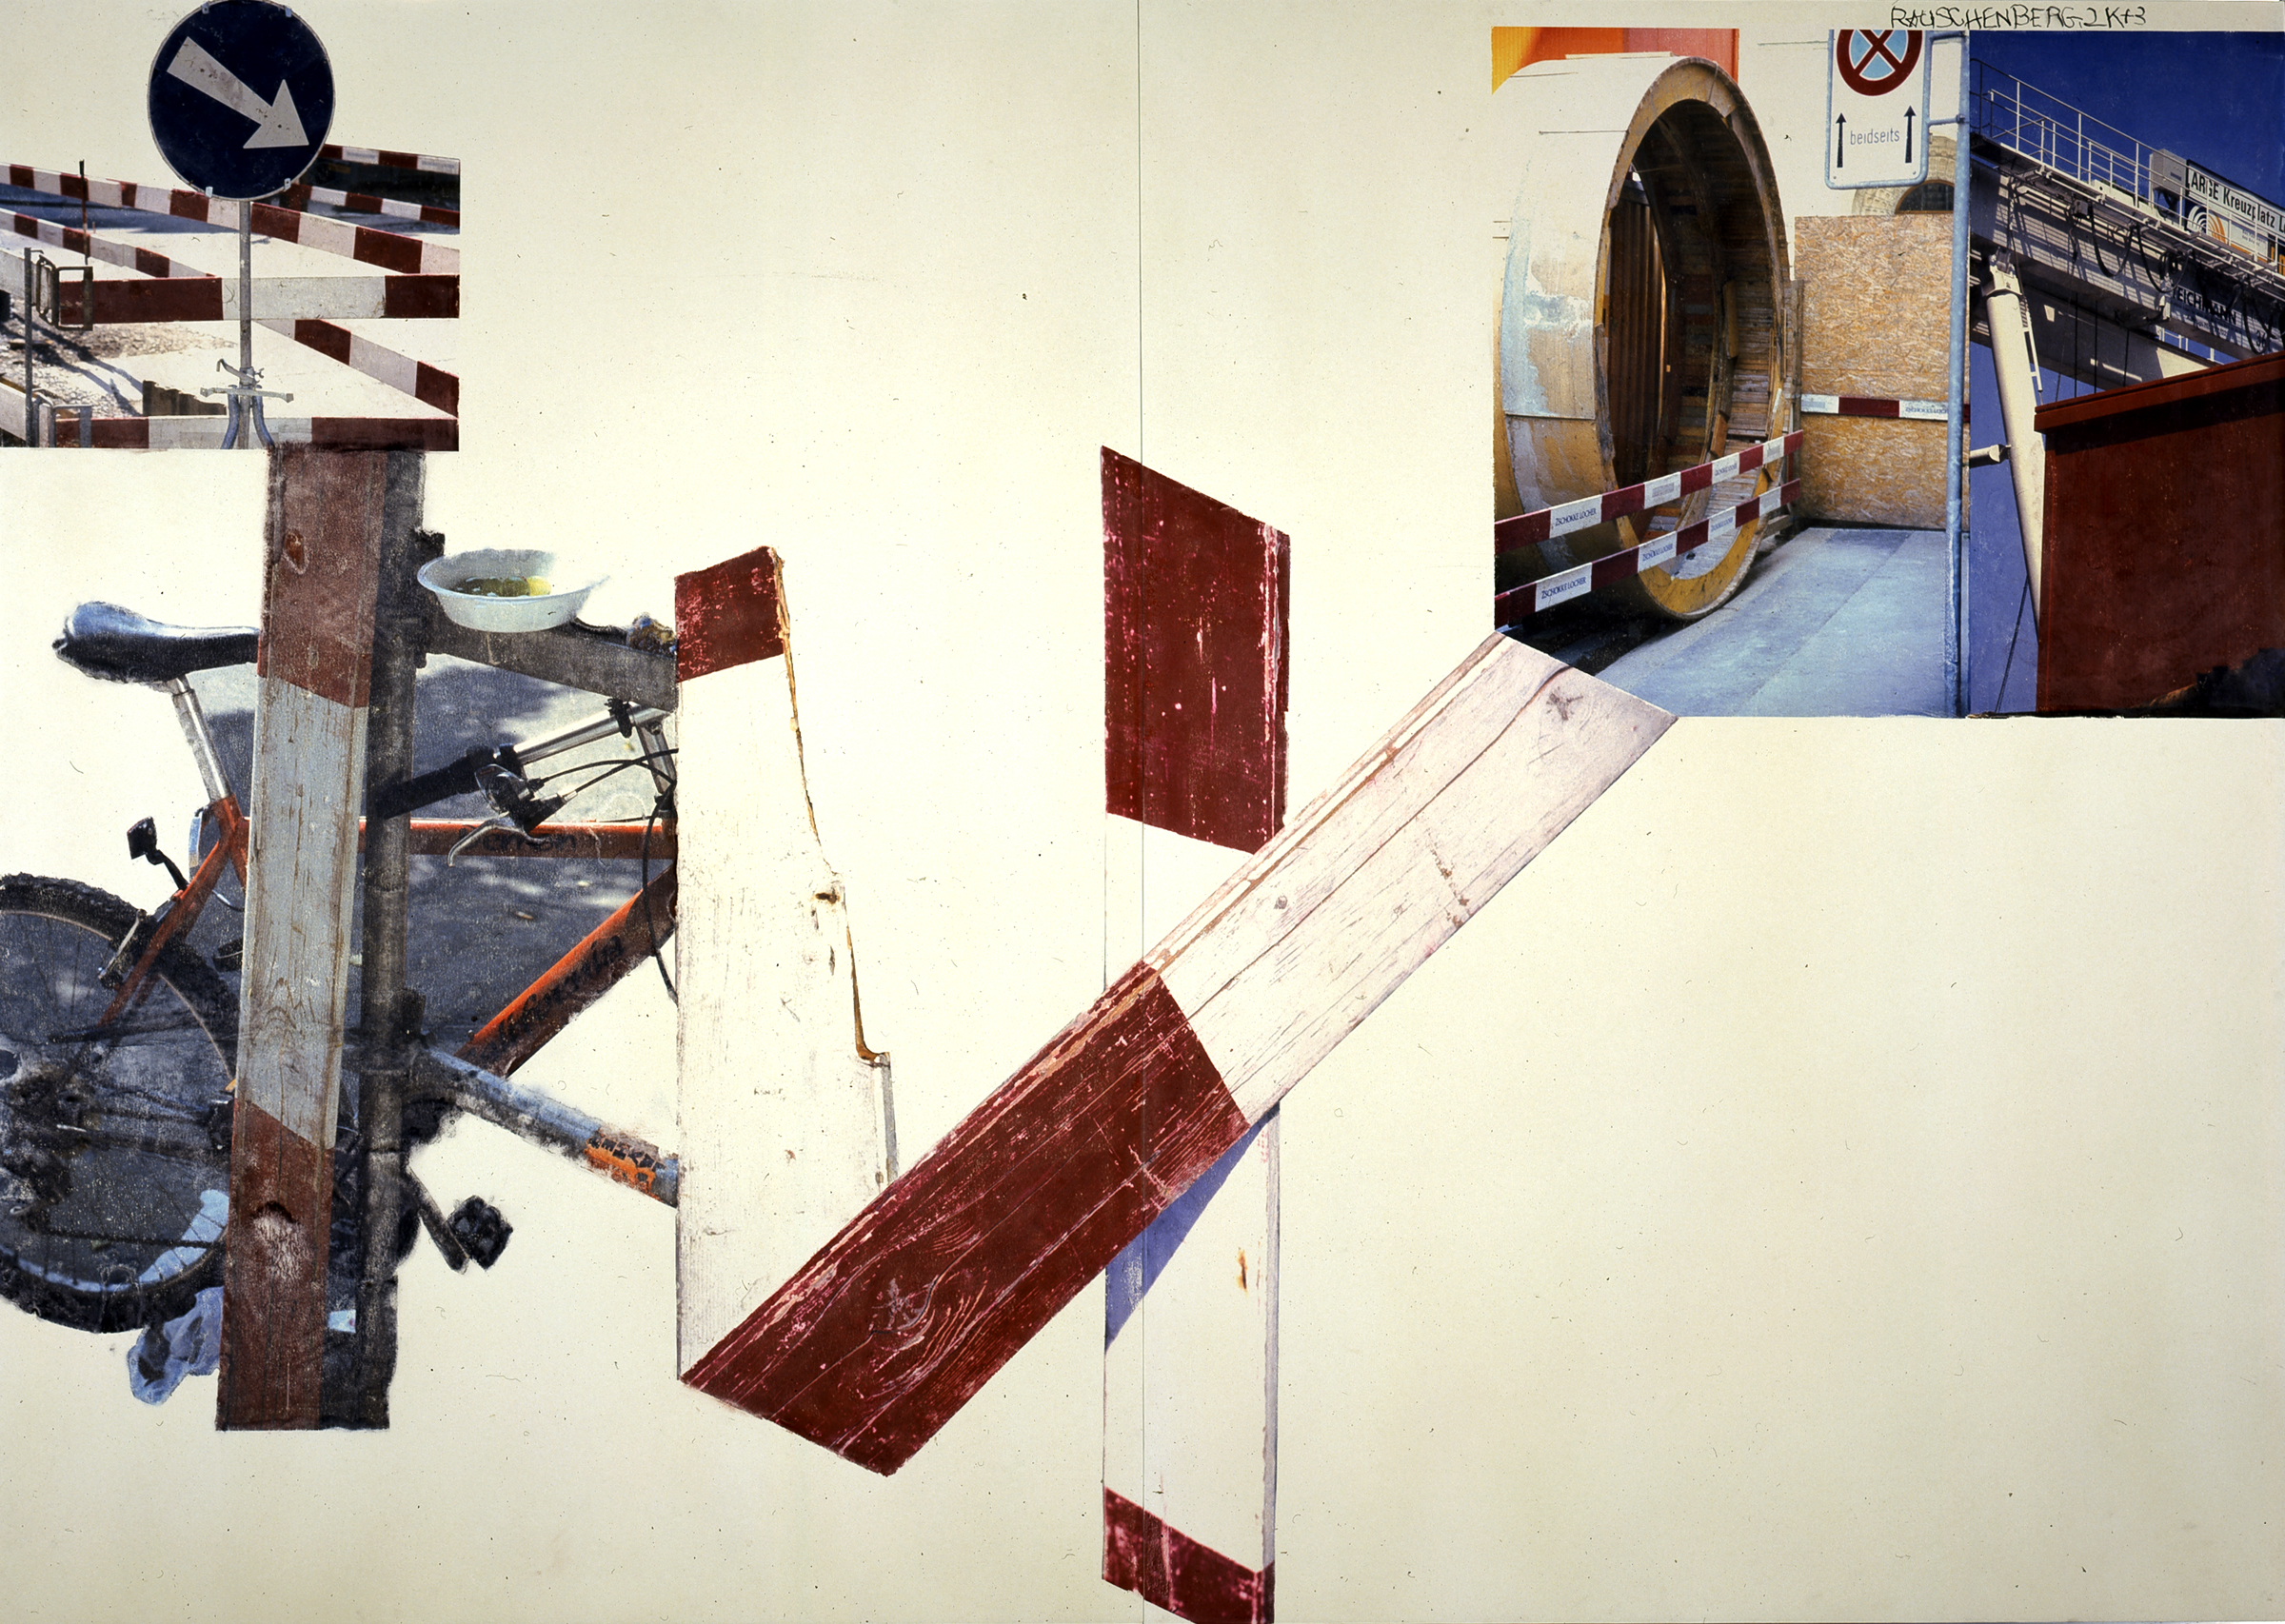 Robert Rauschenberg, Plank (Scenarios), 2003. Robert Rauschenberg Foundation. Art ©Robert Rauschenberg Foundation/Licensed by VAGA, New York, NY